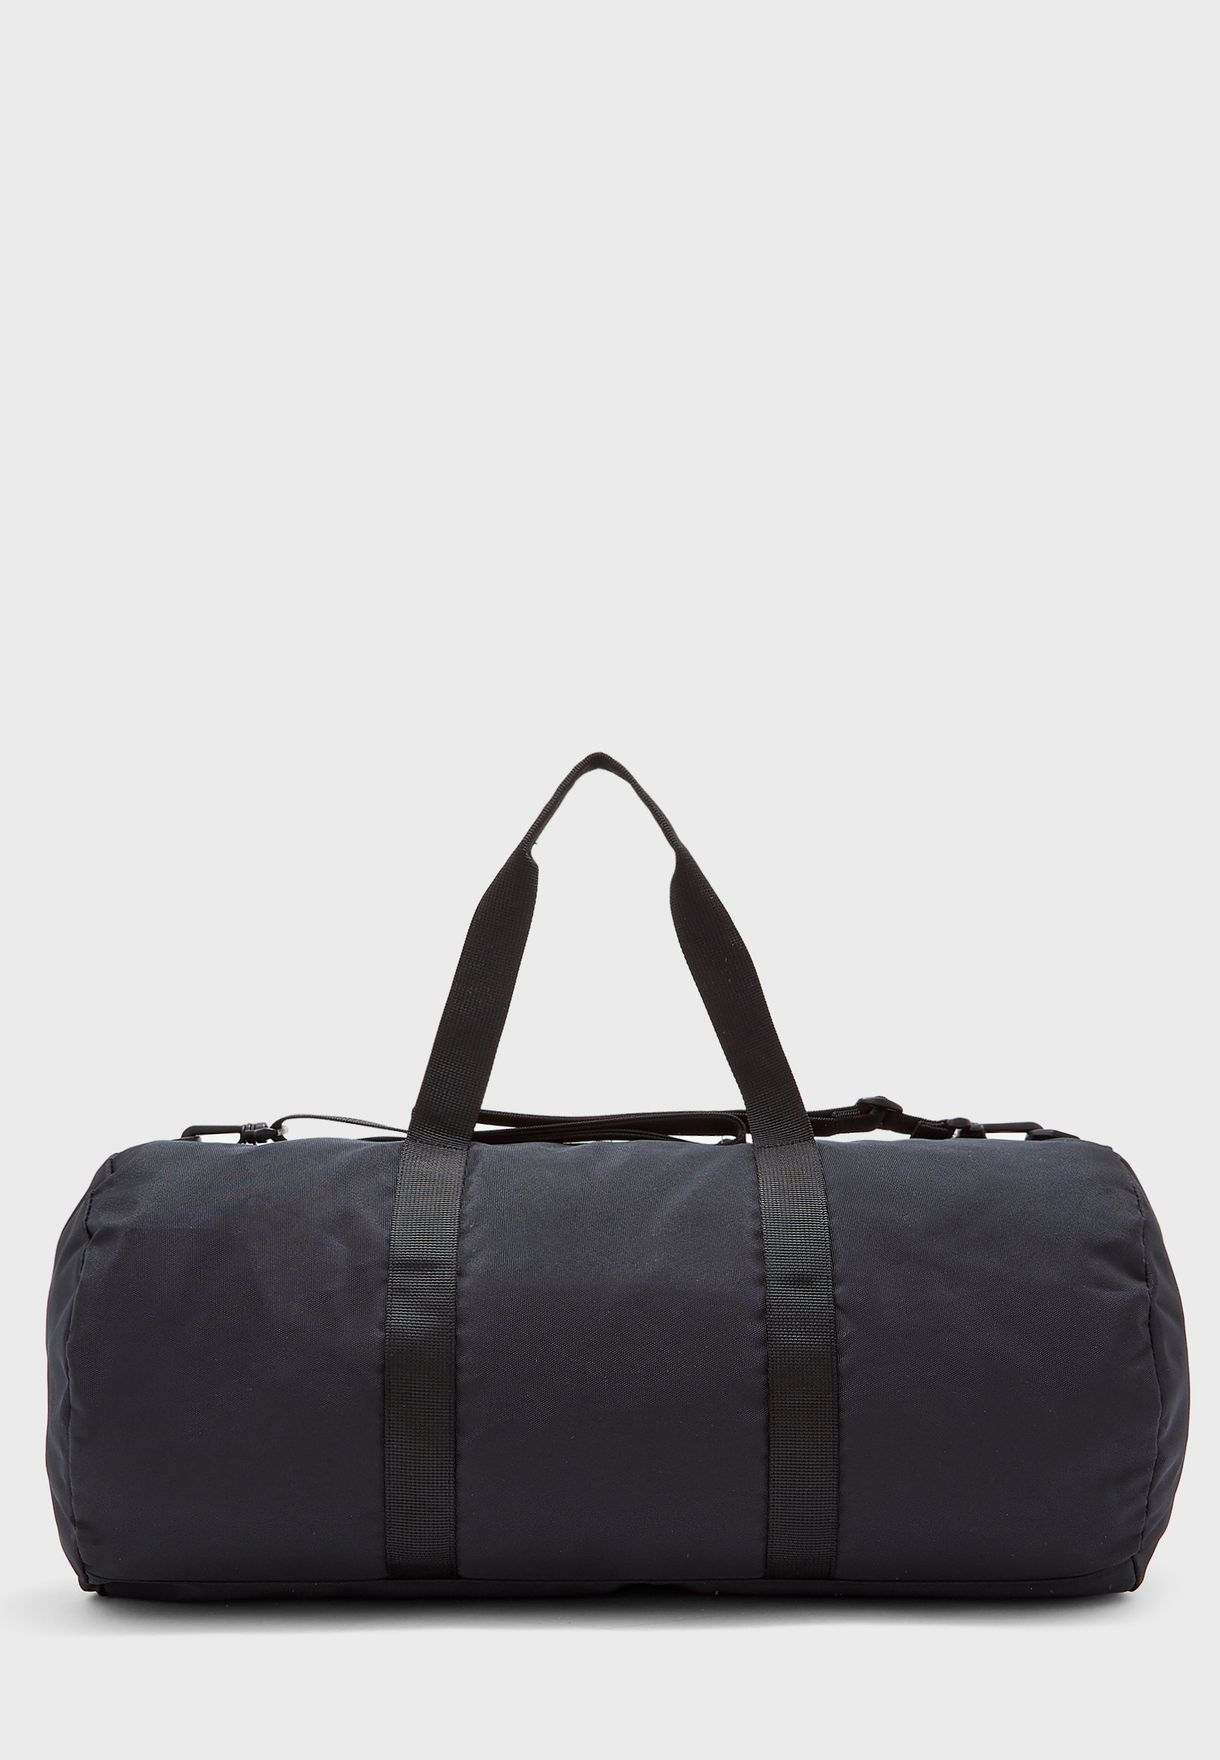 City Duffle Bag